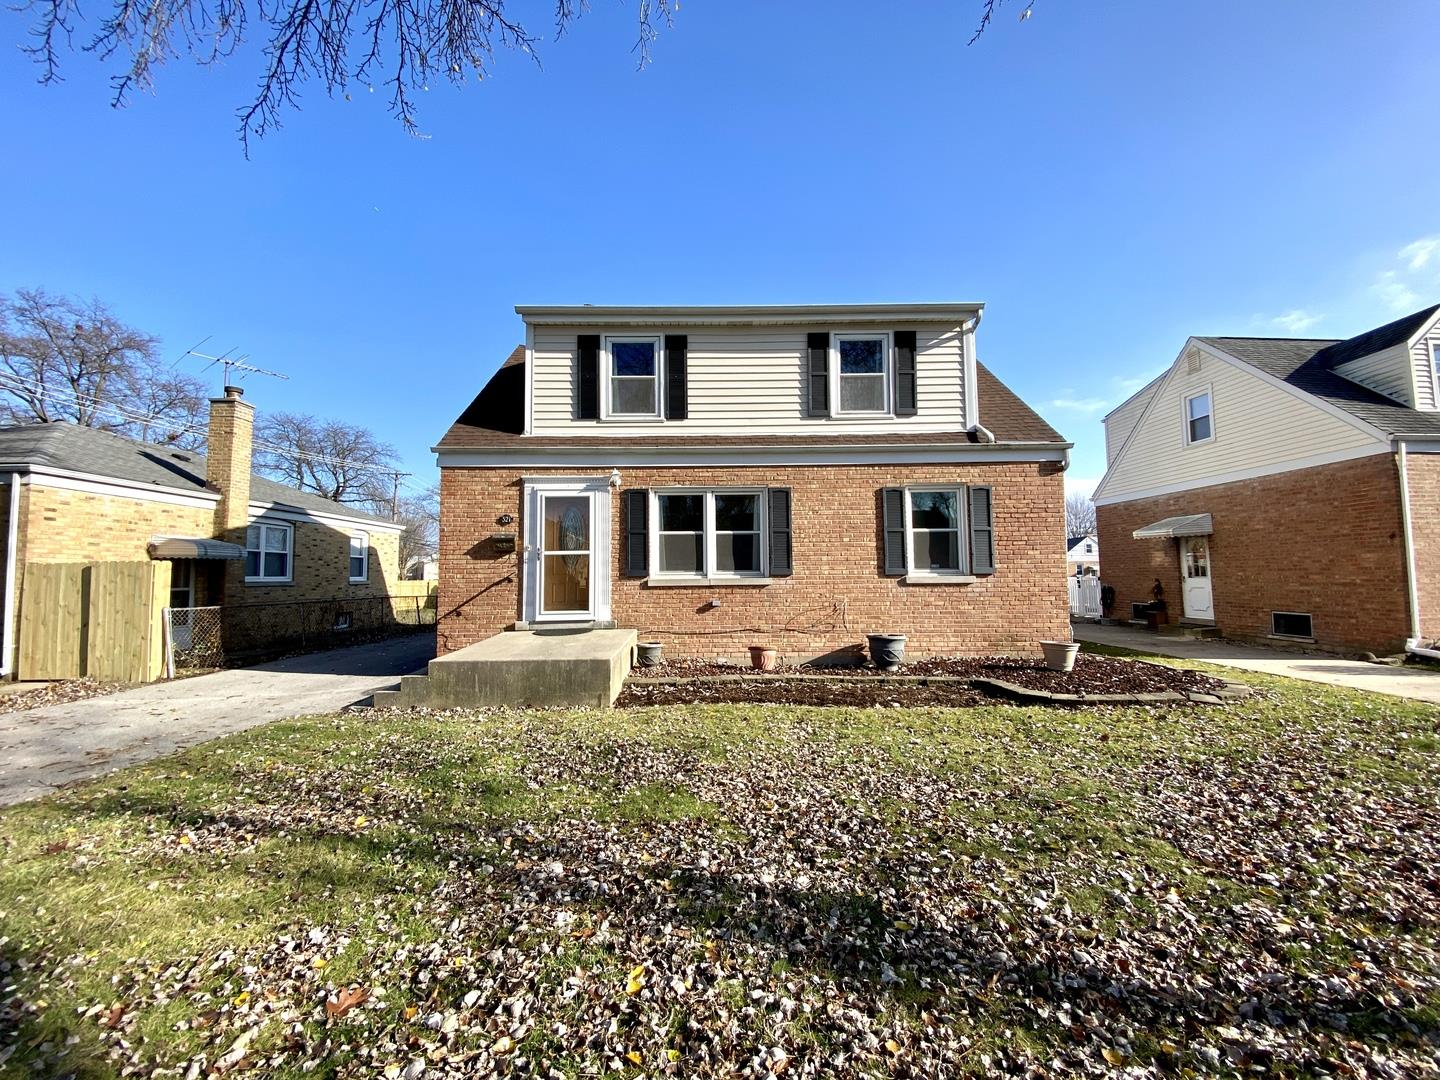 521 N Maple Street, Mount Prospect, IL 60056 - #: 11016502